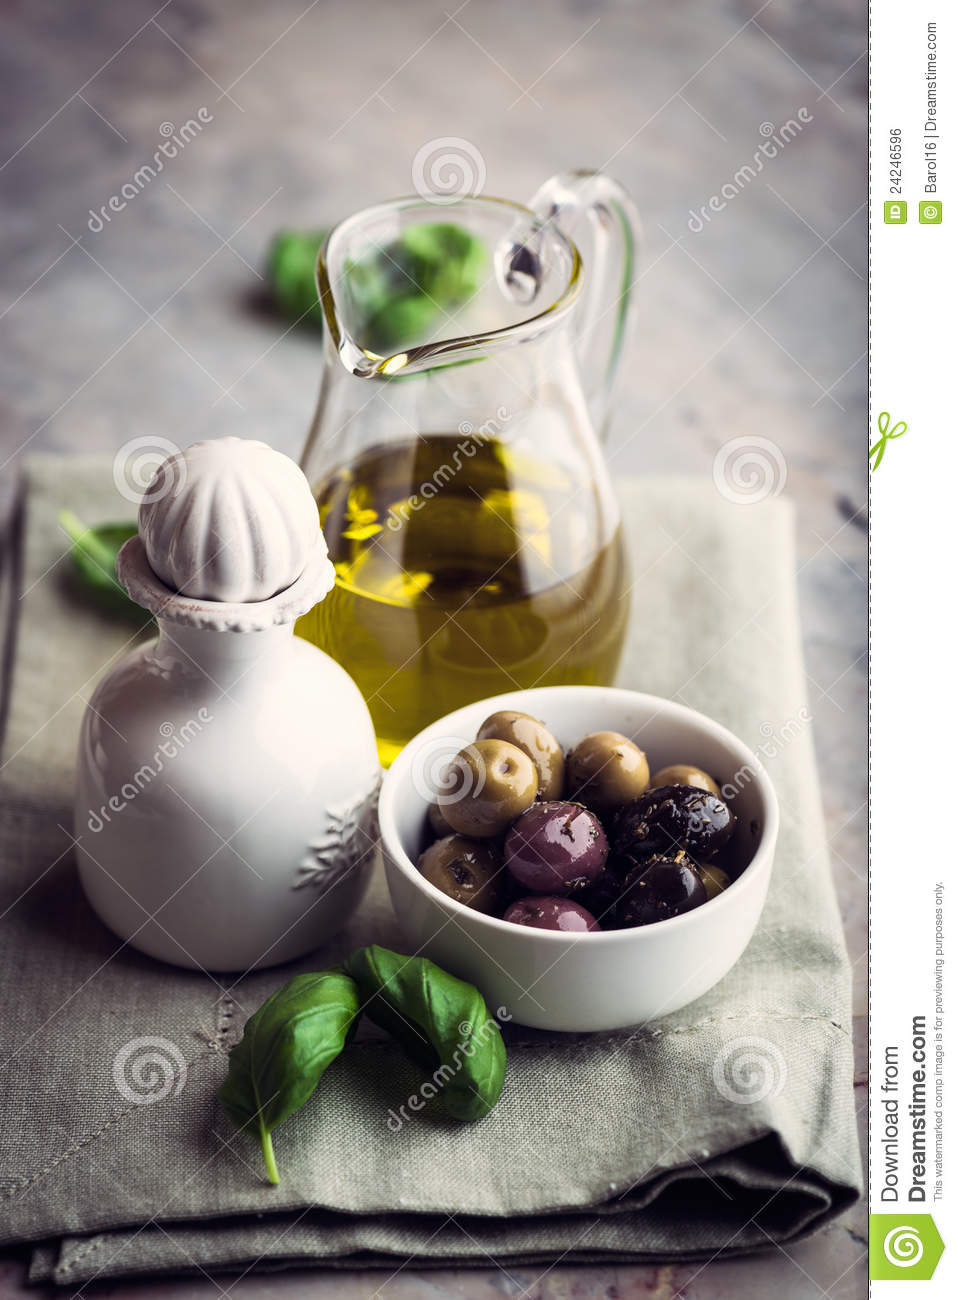 Marinated Olives and Olive Oil